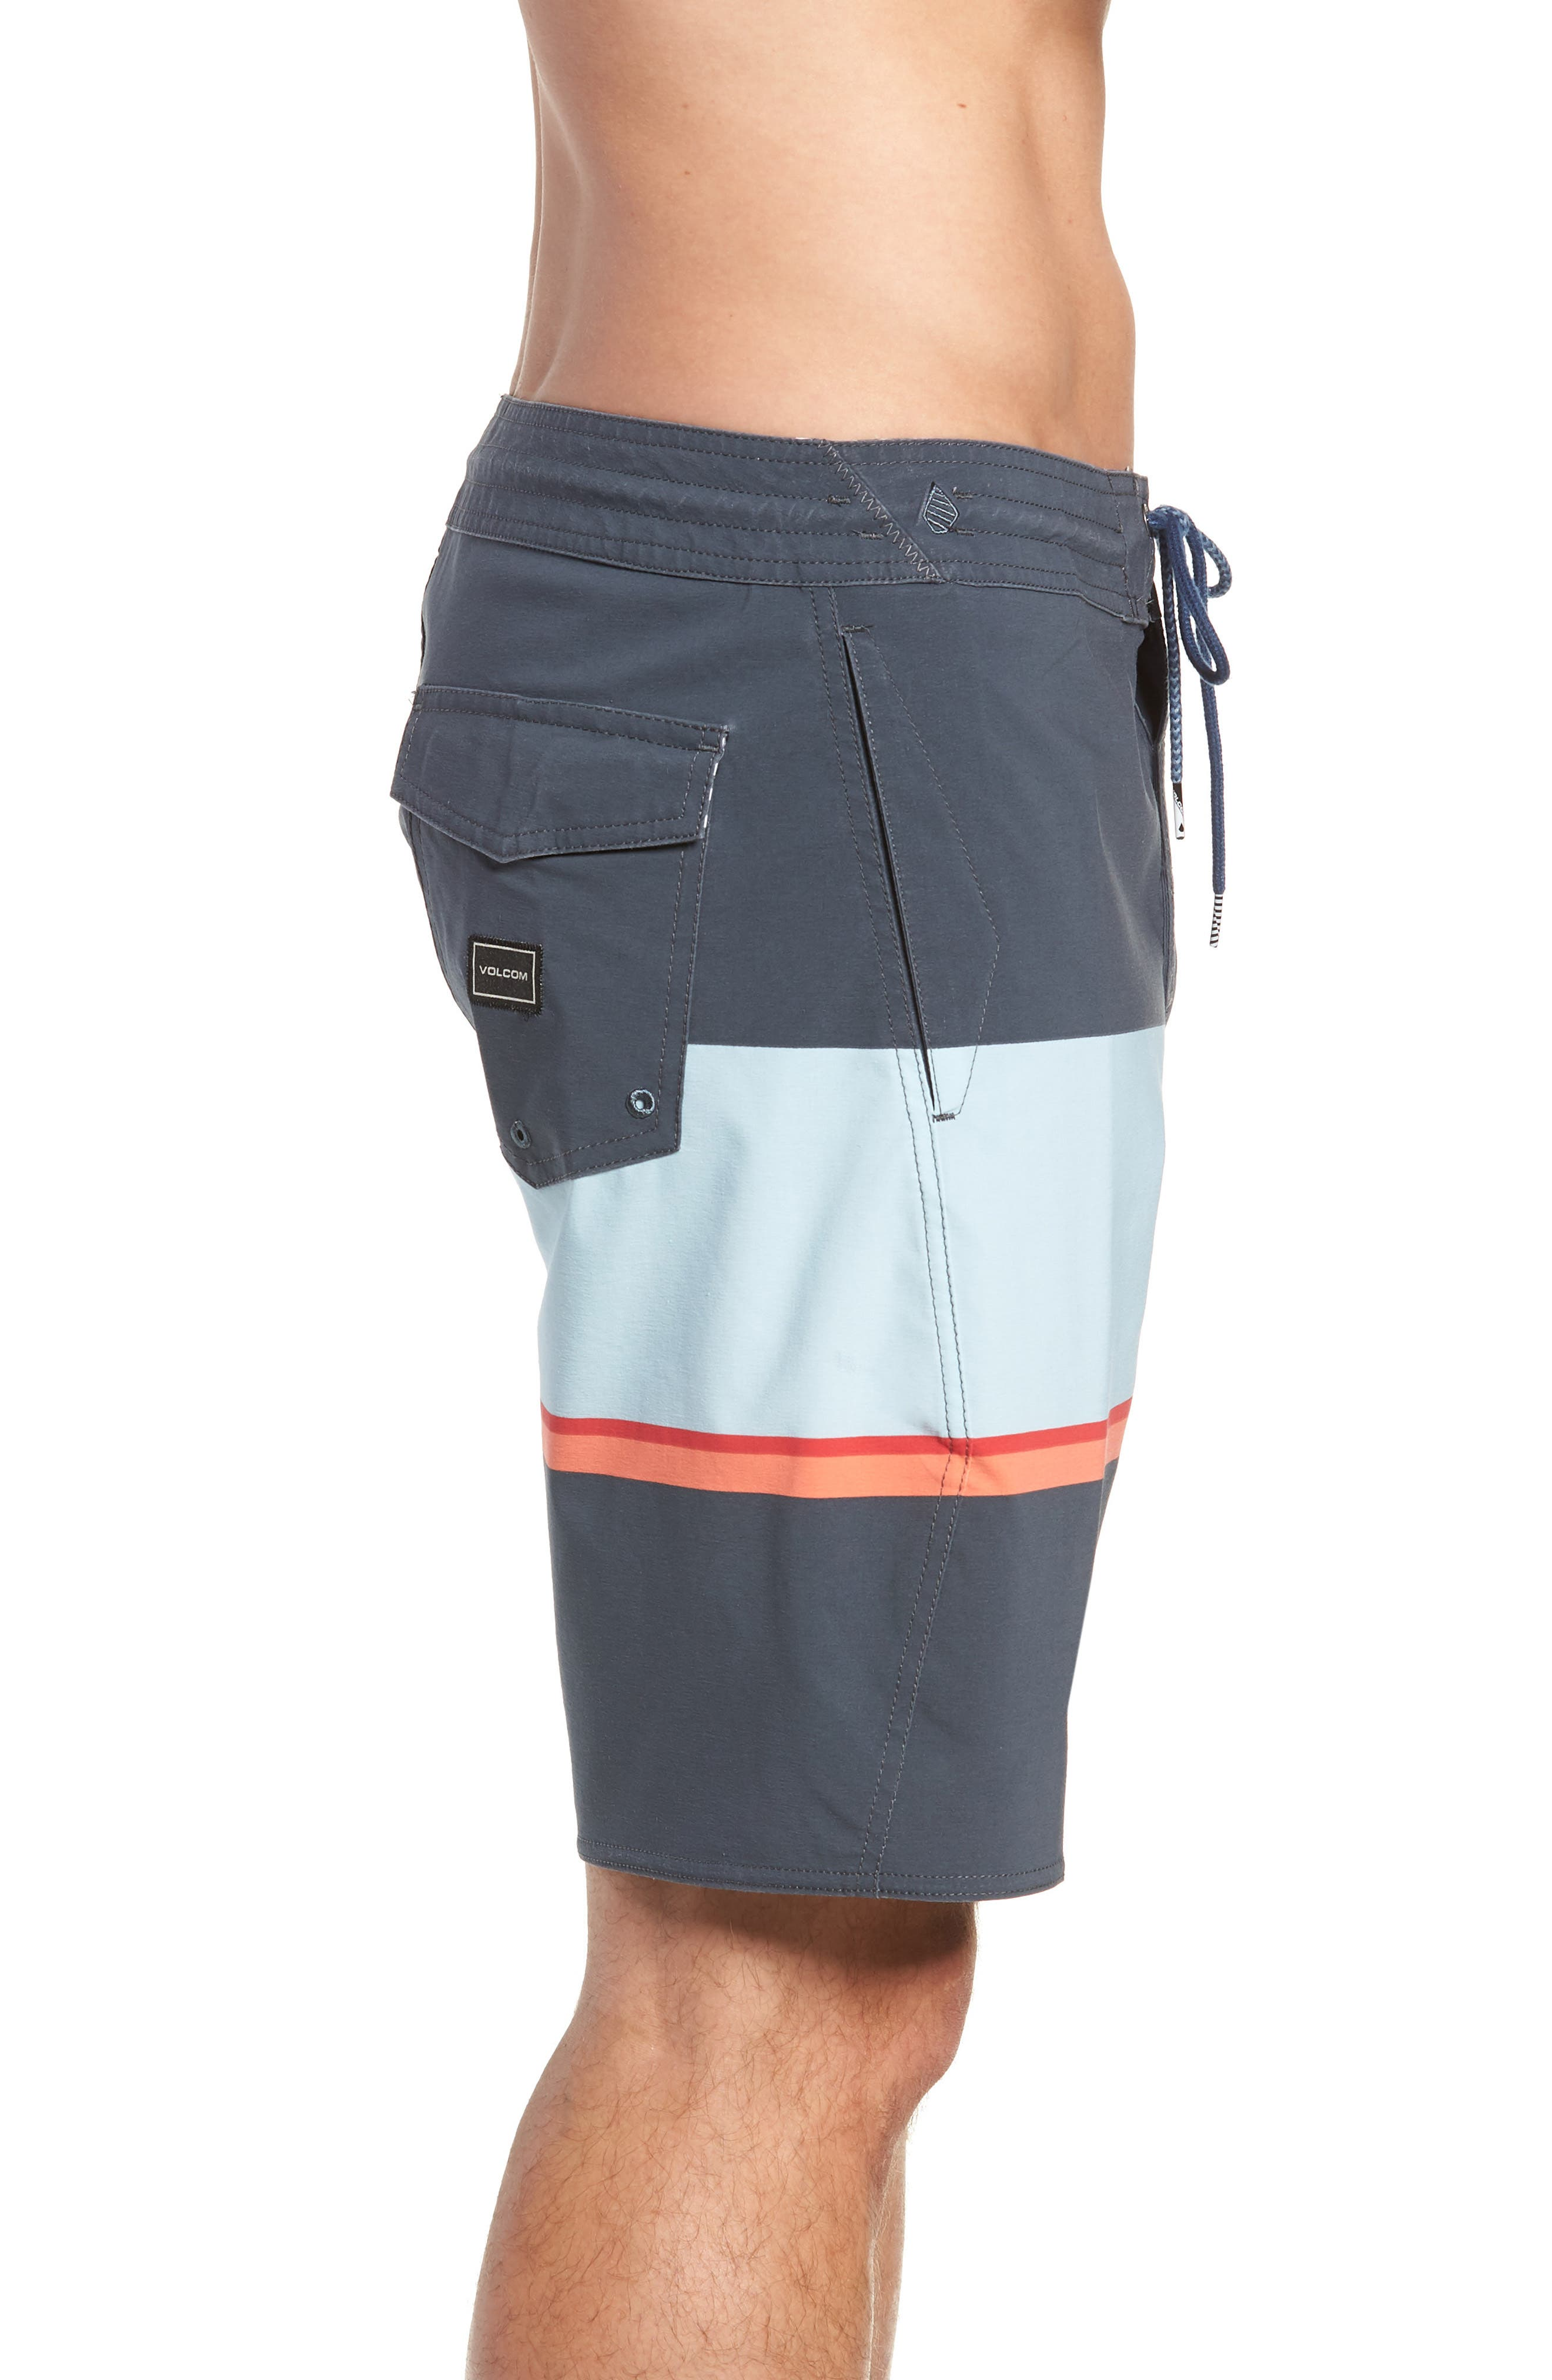 3 Quarta Stoney Board Shorts,                             Alternate thumbnail 4, color,                             MEDIUM BLUE